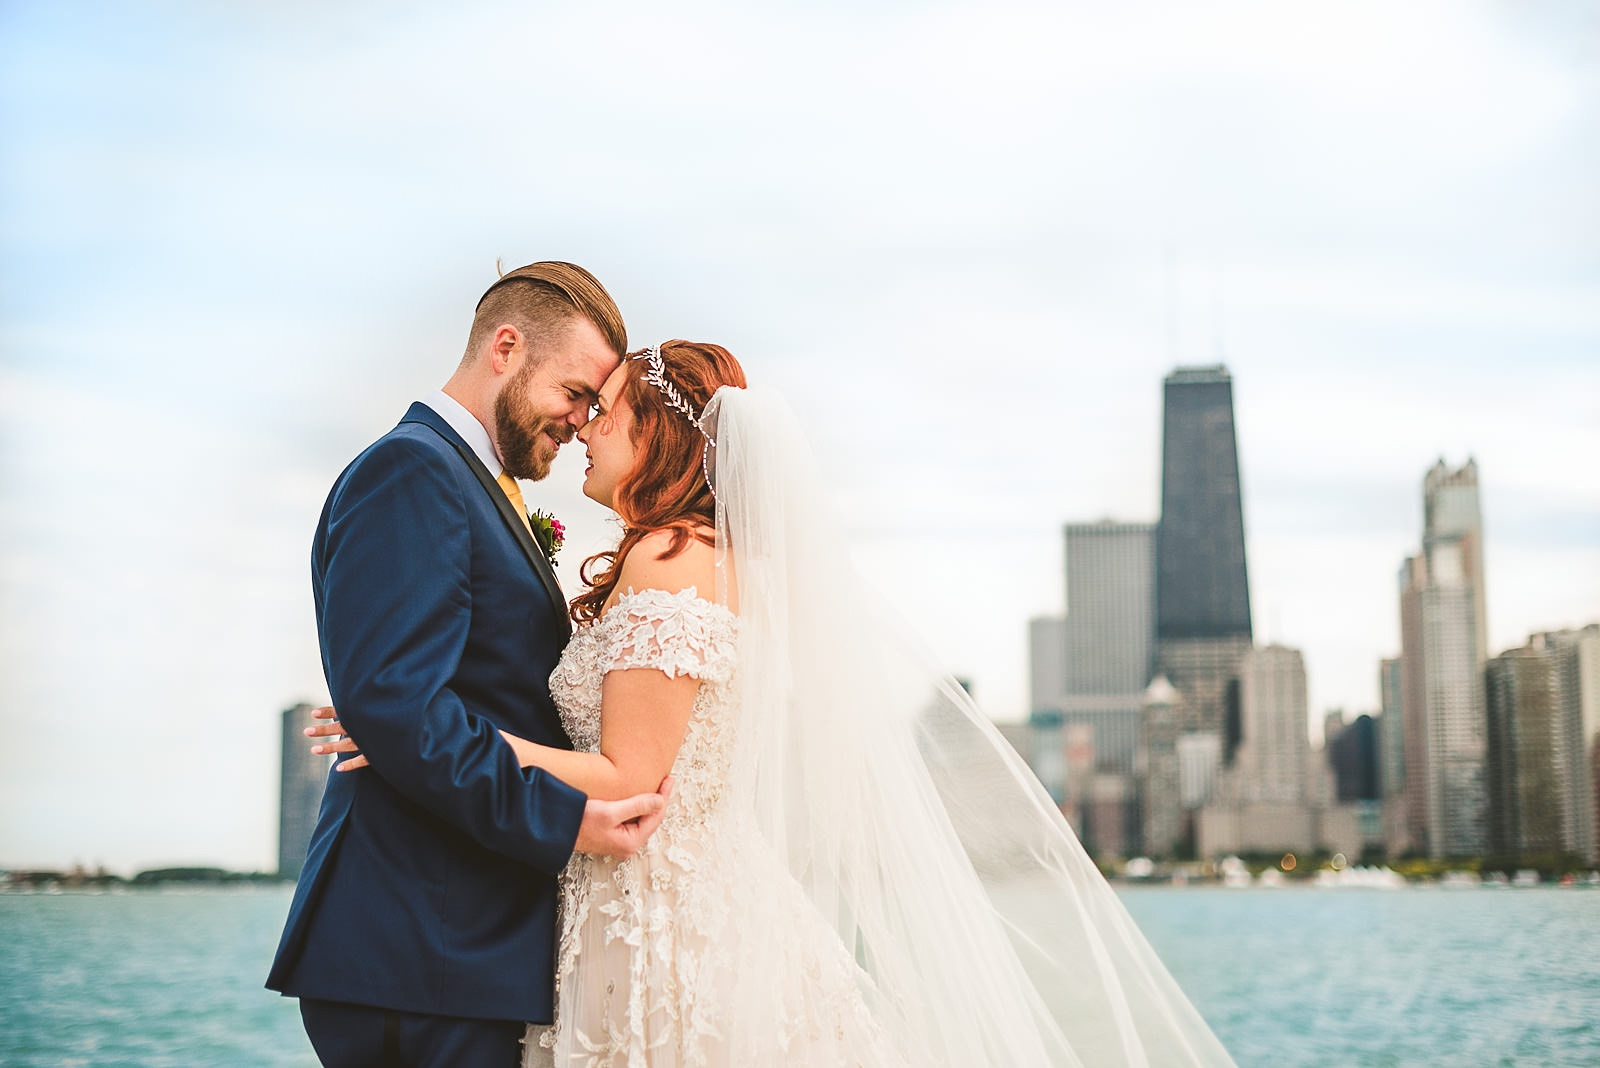 45 wedding portraits on the lakefront - Hilton Chicago Wedding Photographer // Sarah + Aaron